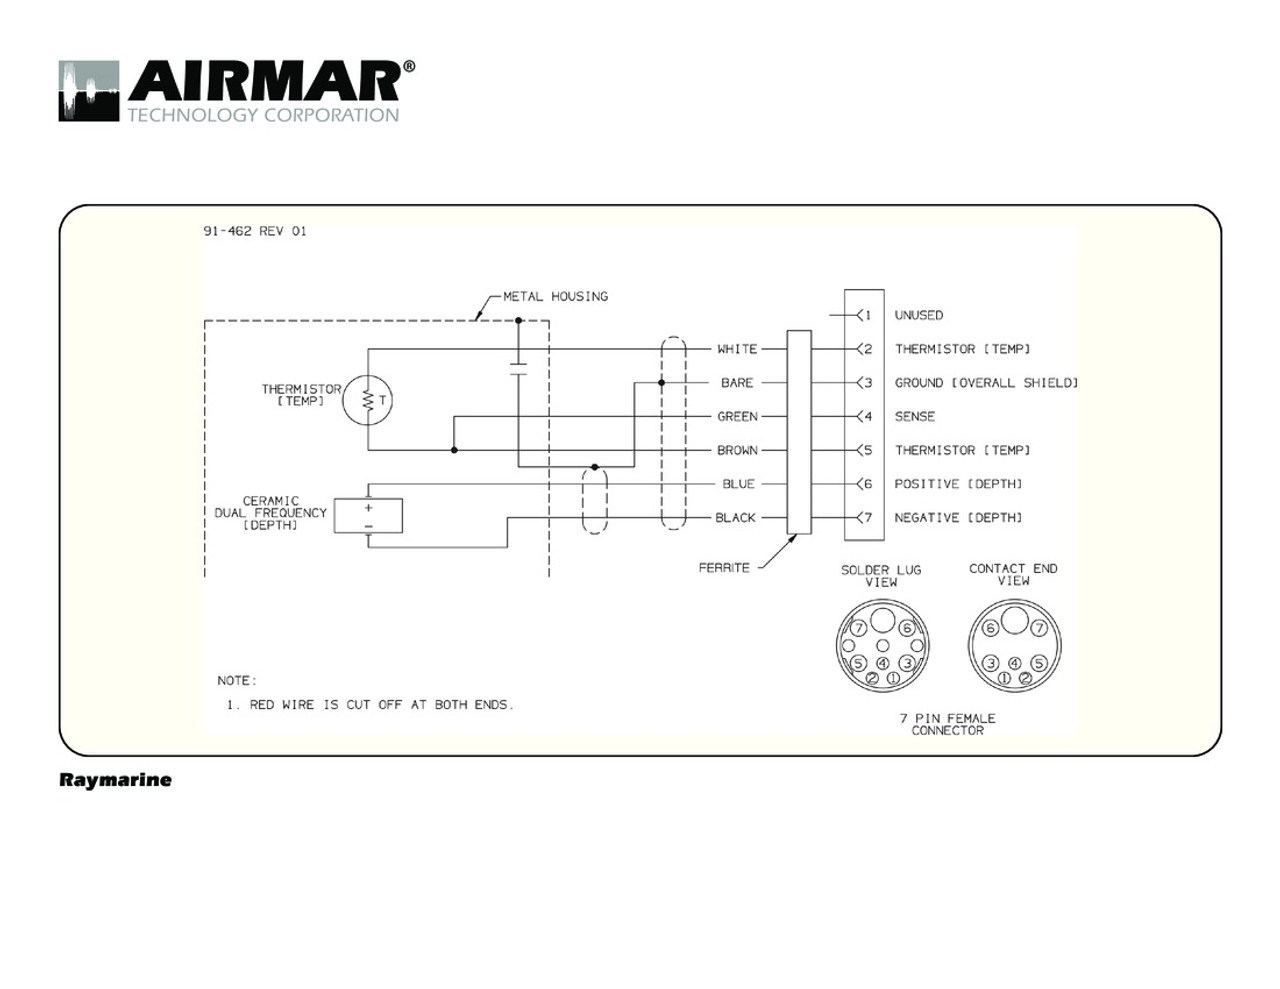 hight resolution of lowrance nmea 0183 wiring diagram free download wiring diagram view lowrance nmea 0183 wiring pictures to